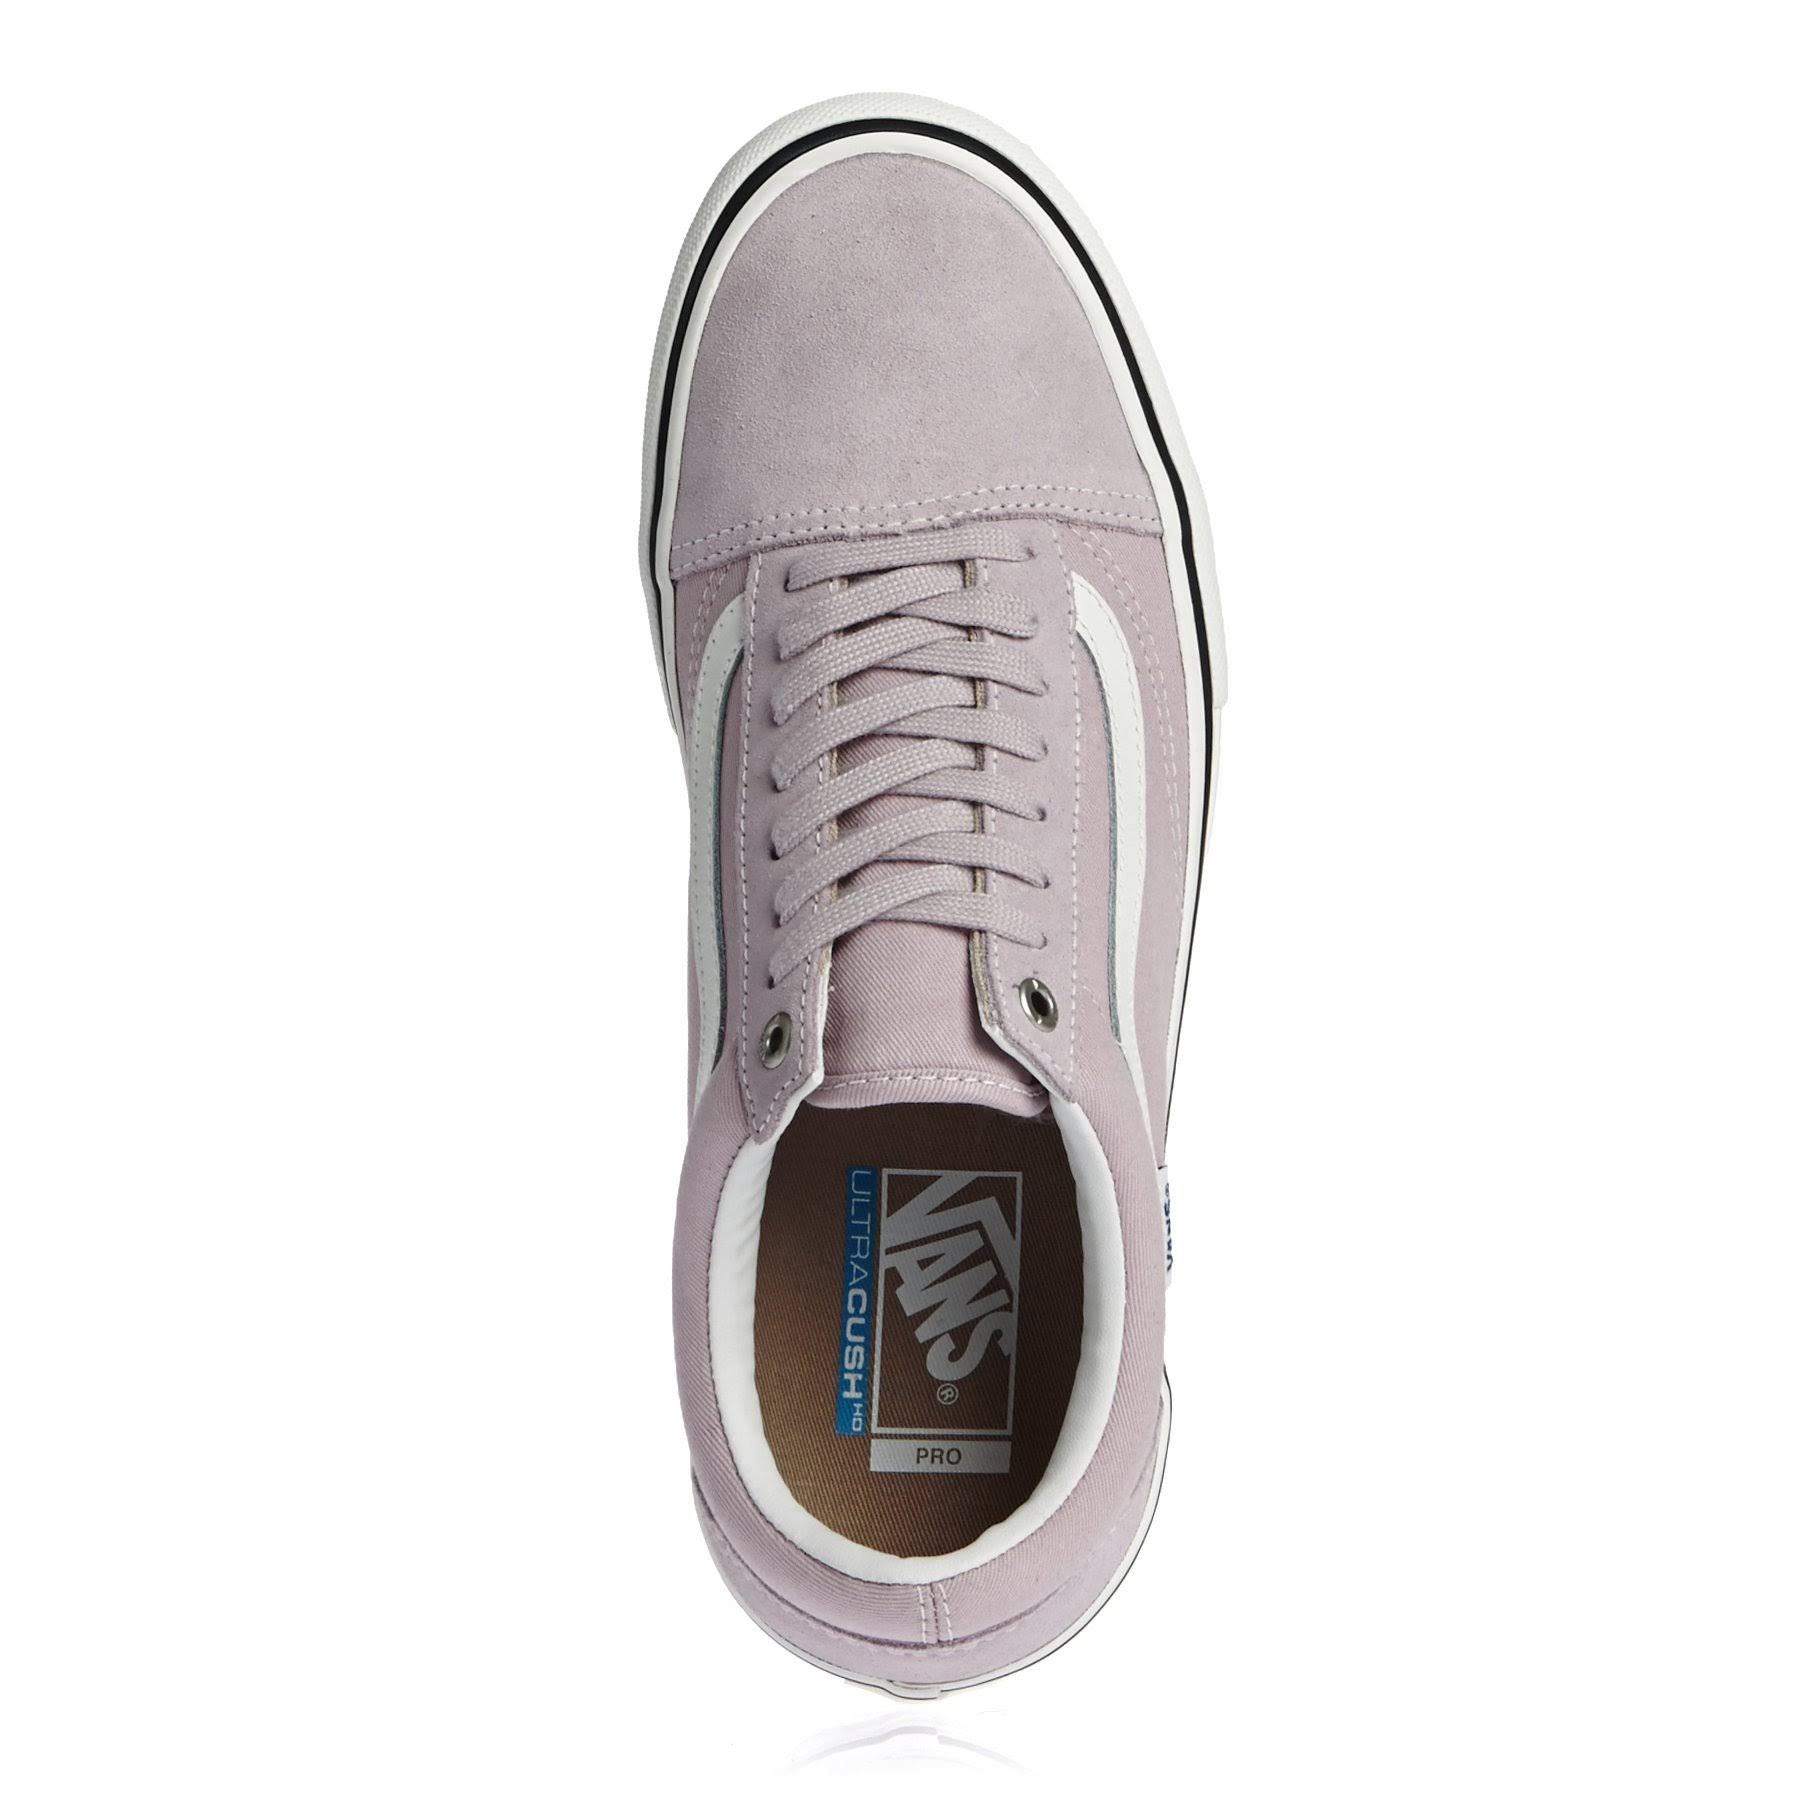 Pro violet Retro Skool Old Vans Ice qtf87ww